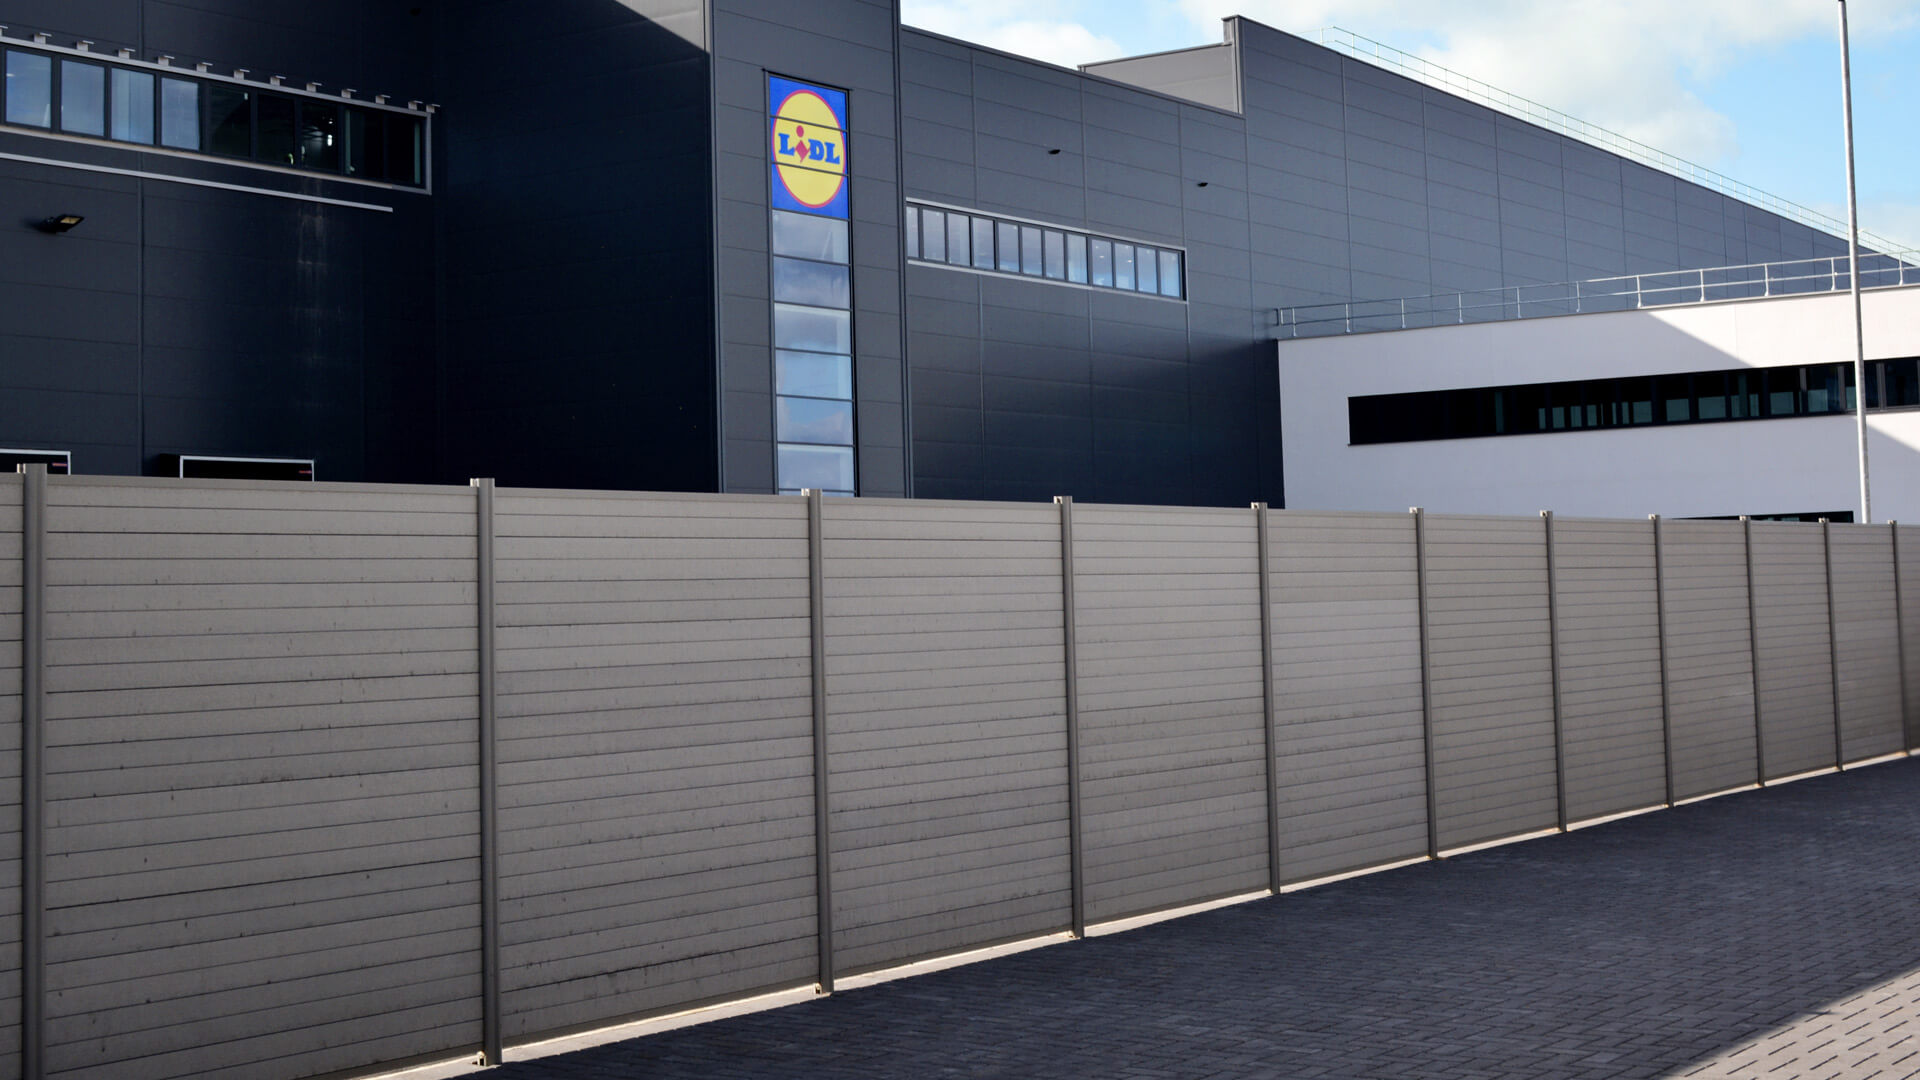 Composite Fencing Lidl Builddeck 2